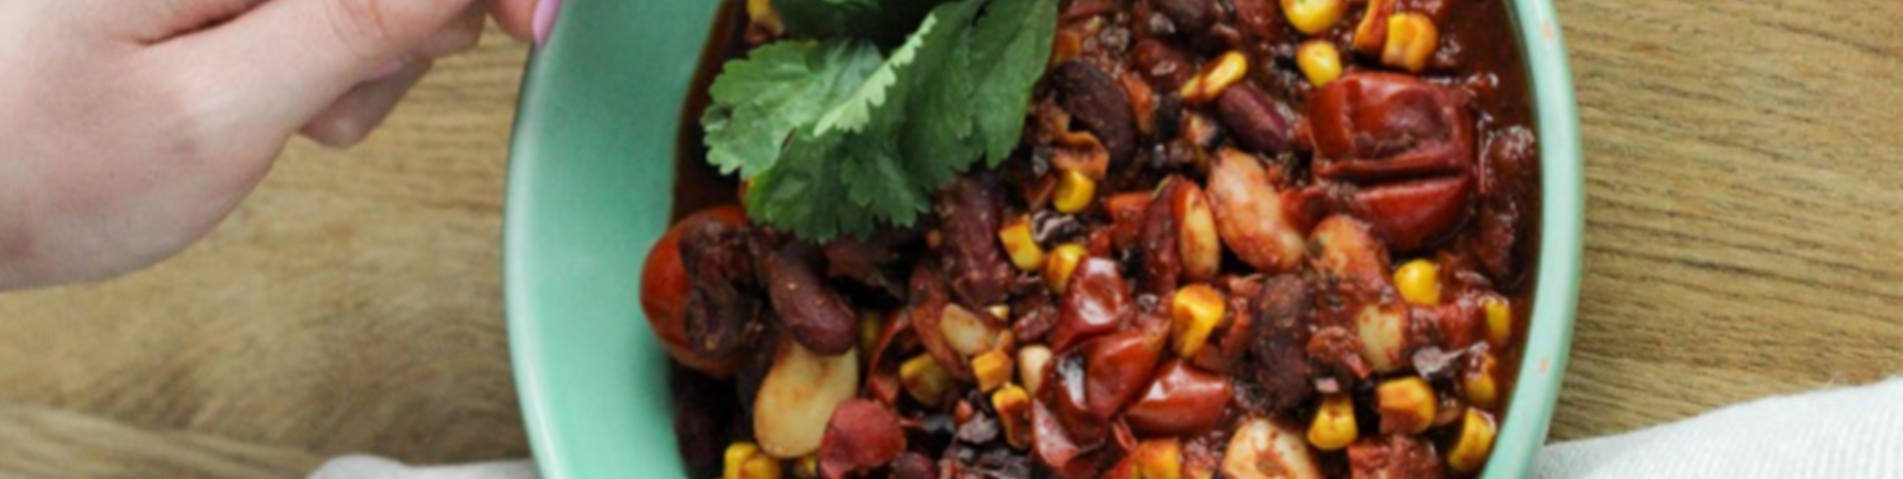 Superfood Chilli Sin Carne 2.PNG